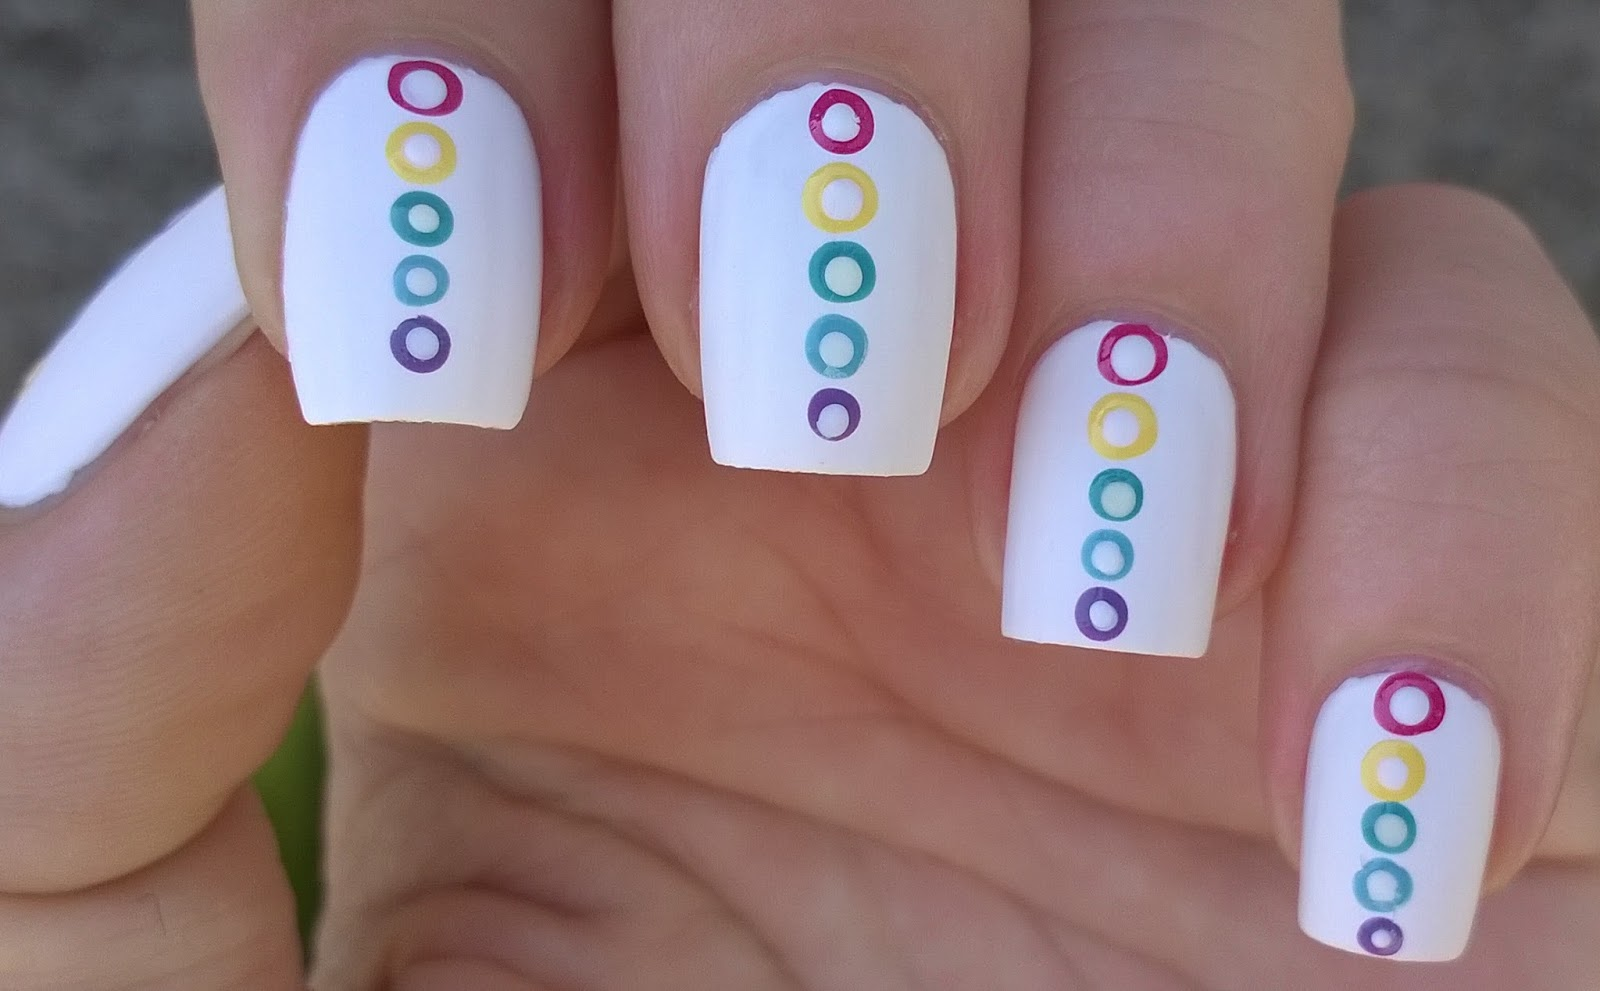 Life World Women Matte White Nail Art With Dot Design In The Colors